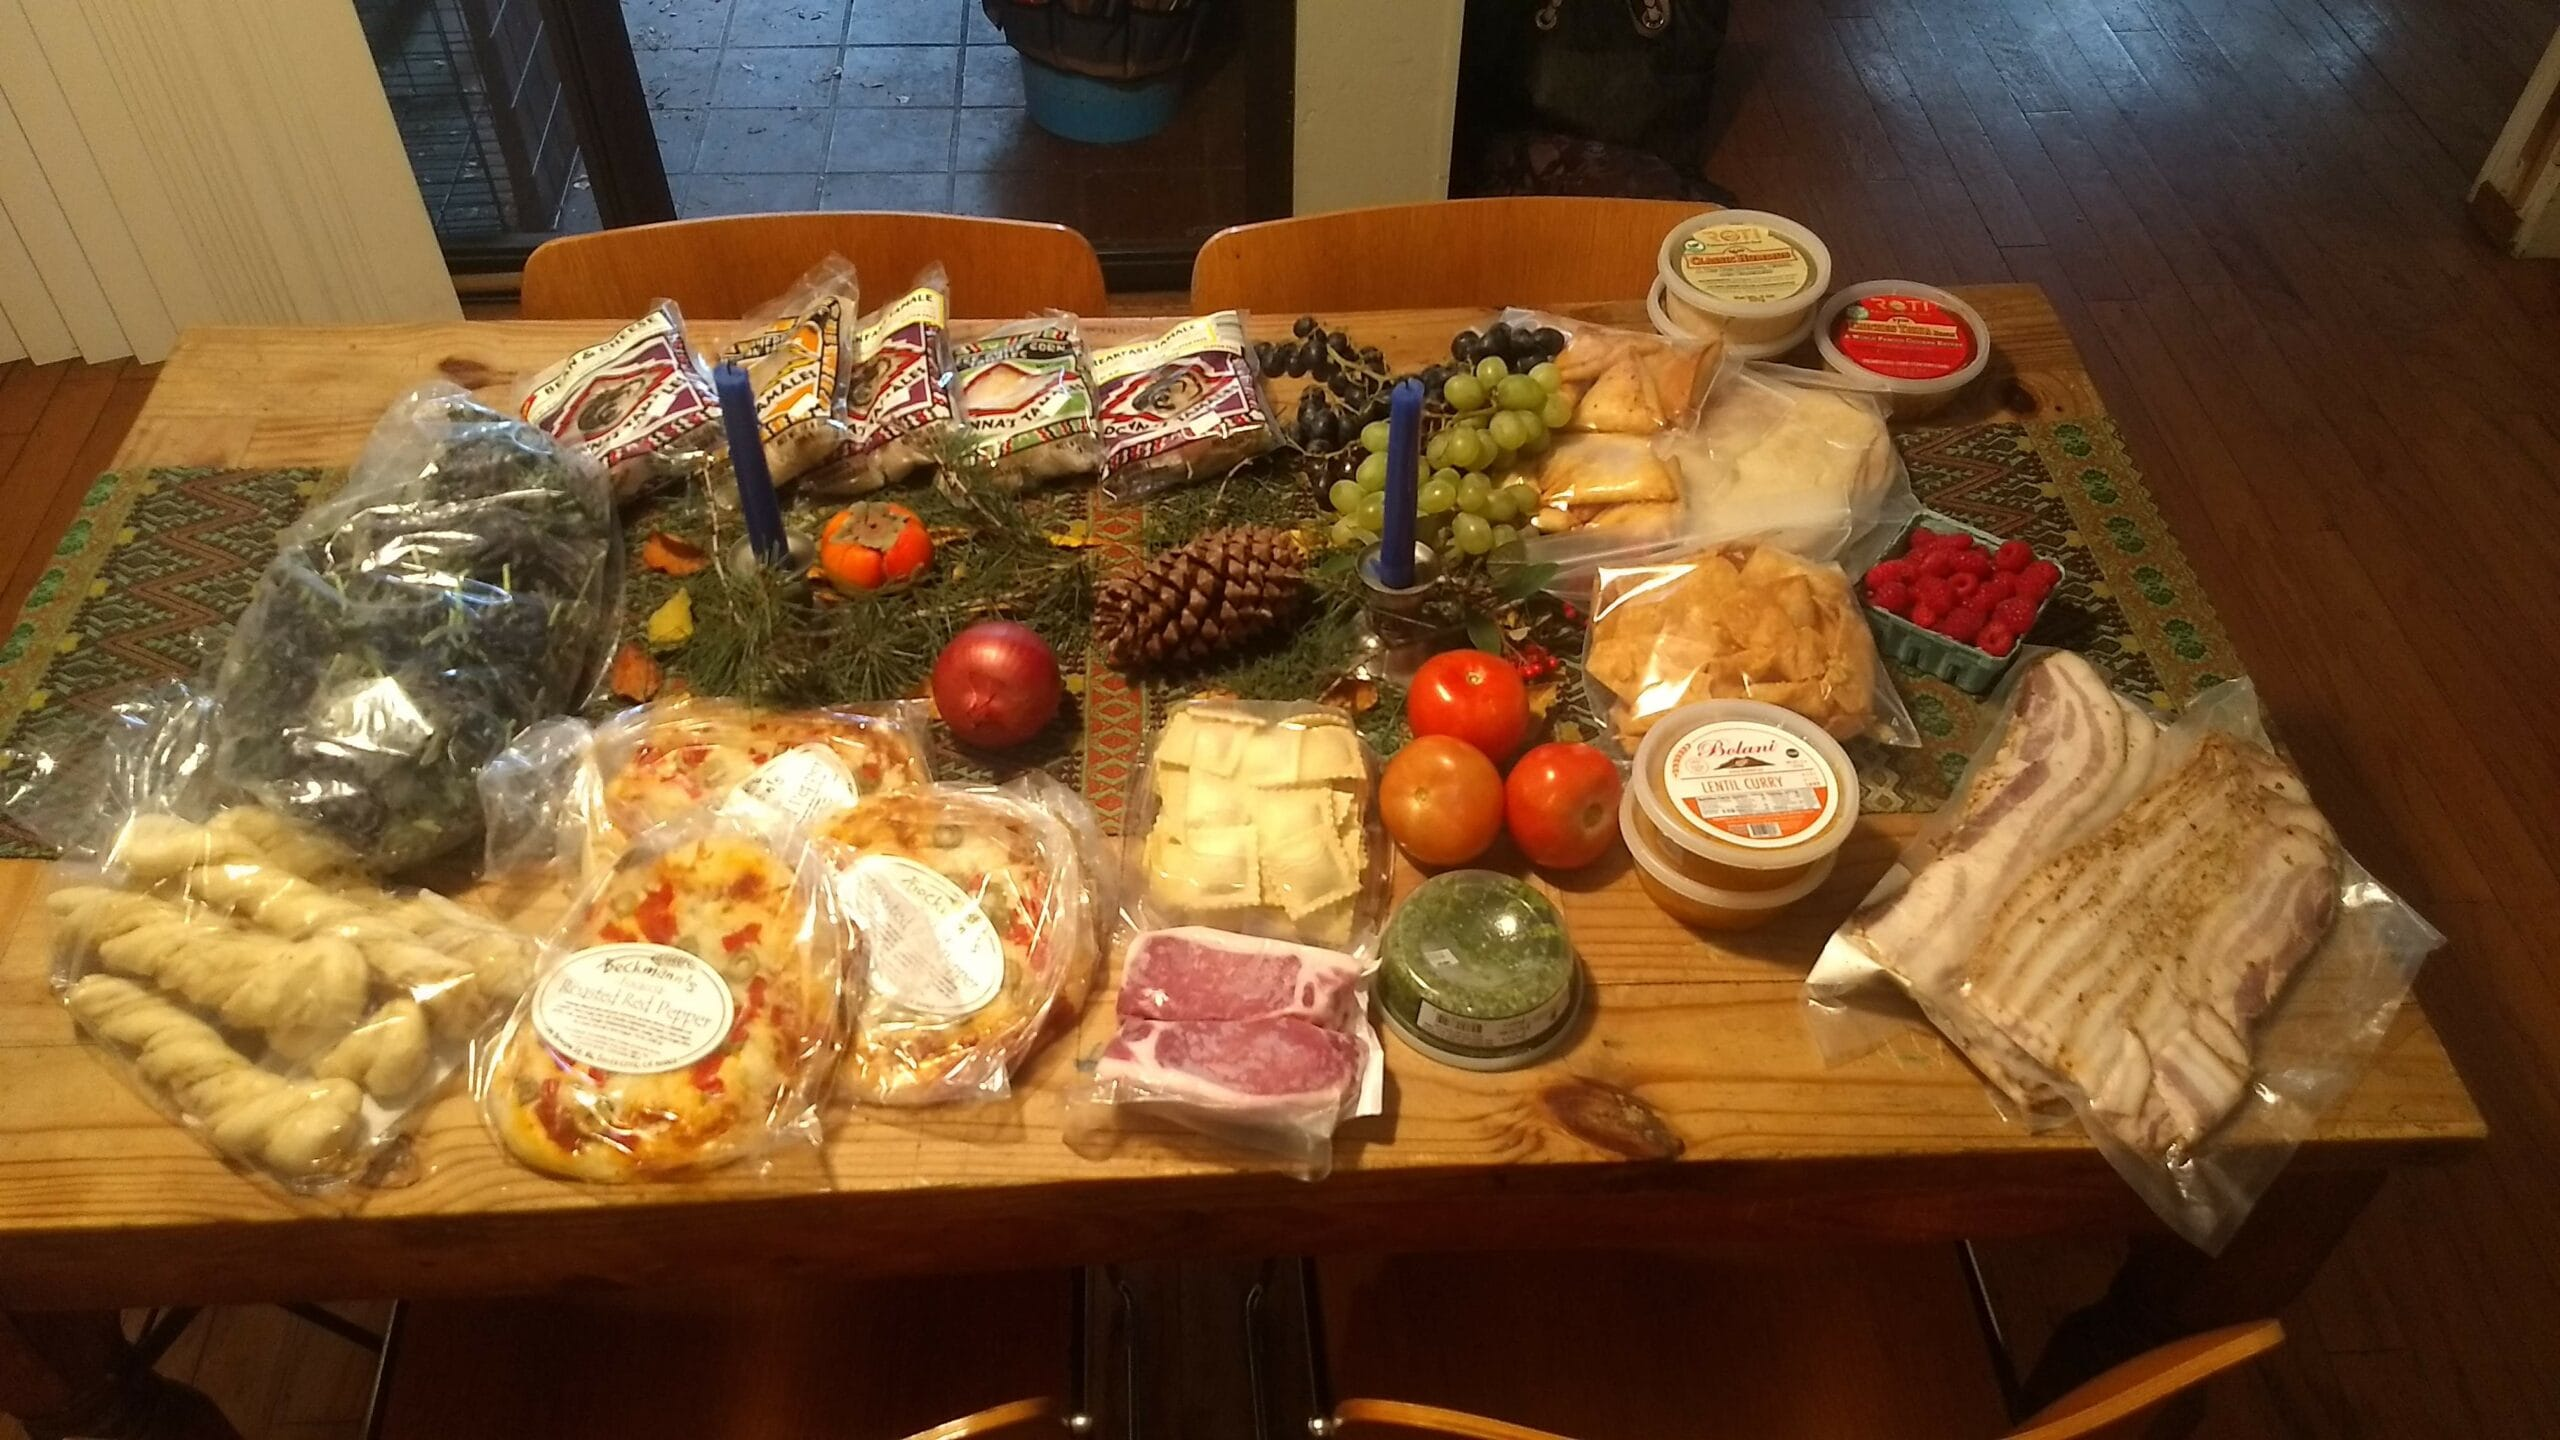 Our haul from Mountain View's fantastic farmers market. Credit: Neal Gorenflo.